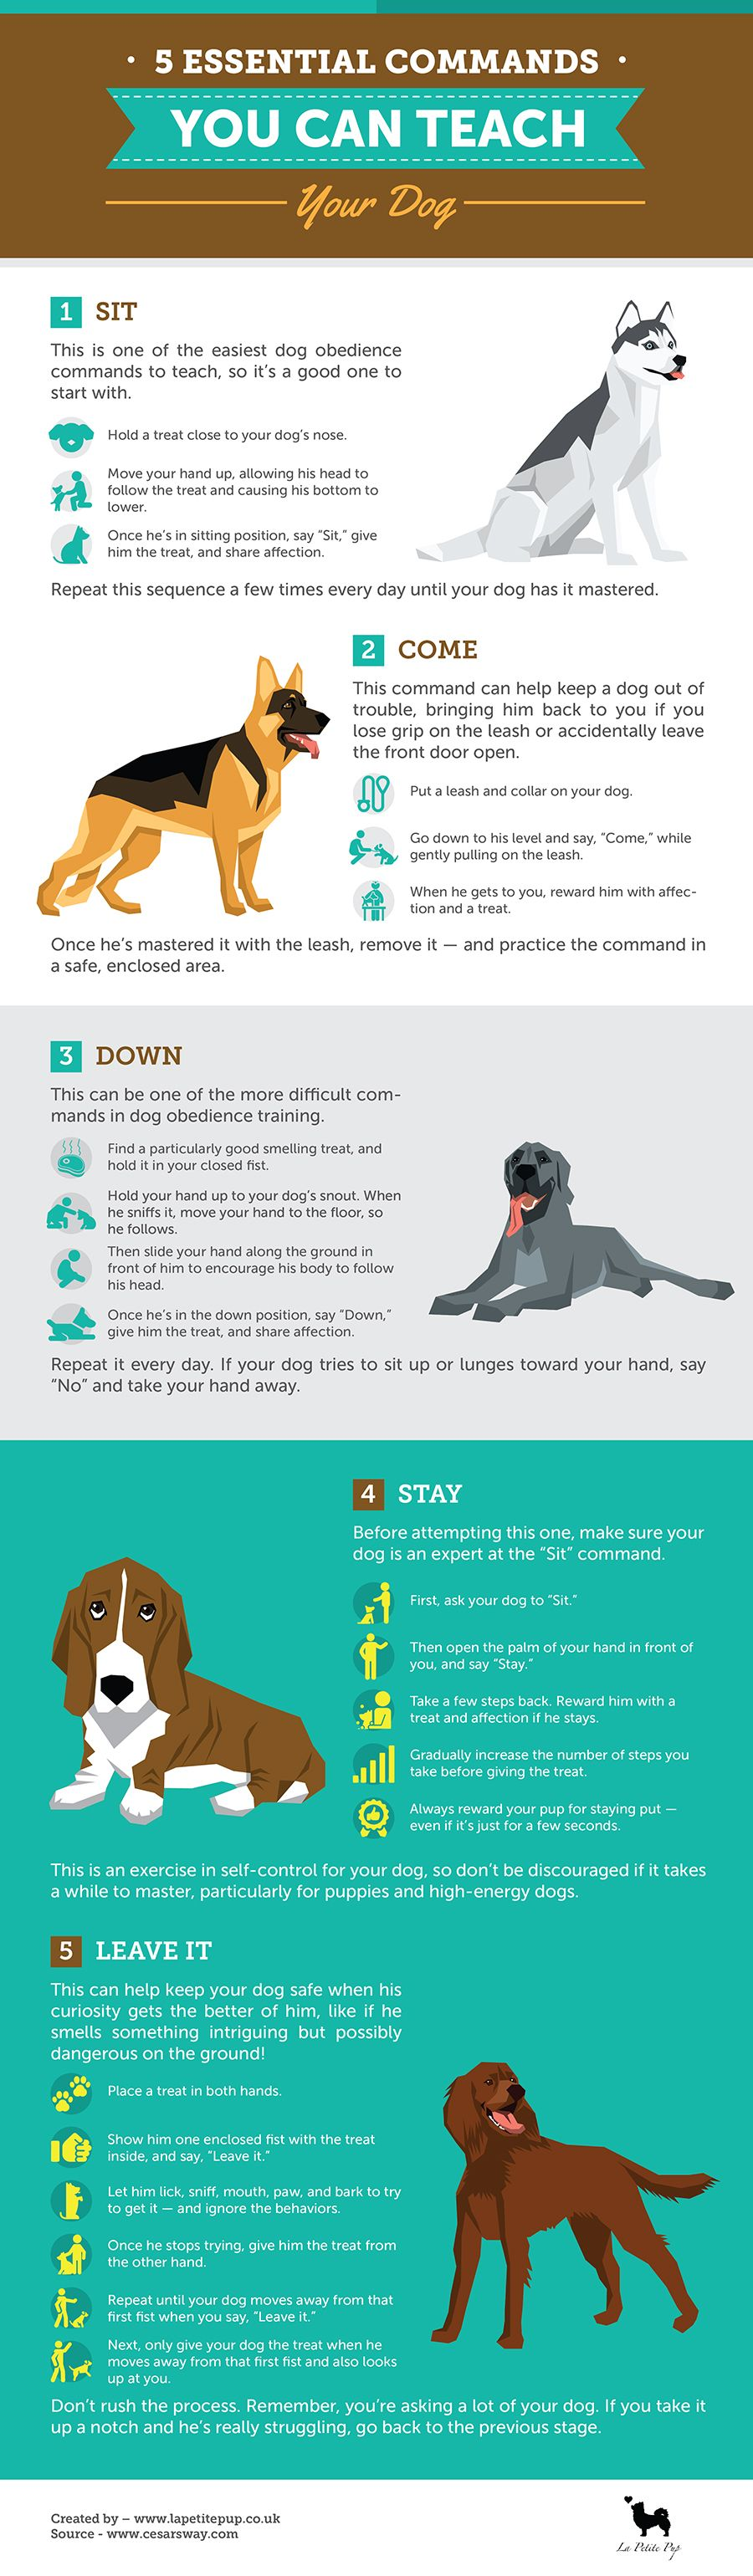 Https Www Lapetitepup Co Uk 5 Essential Commands Can Teach Dog Infographic In This Infographic We Share How To Teach Your Dog Th Dog Training Dog Care Dogs